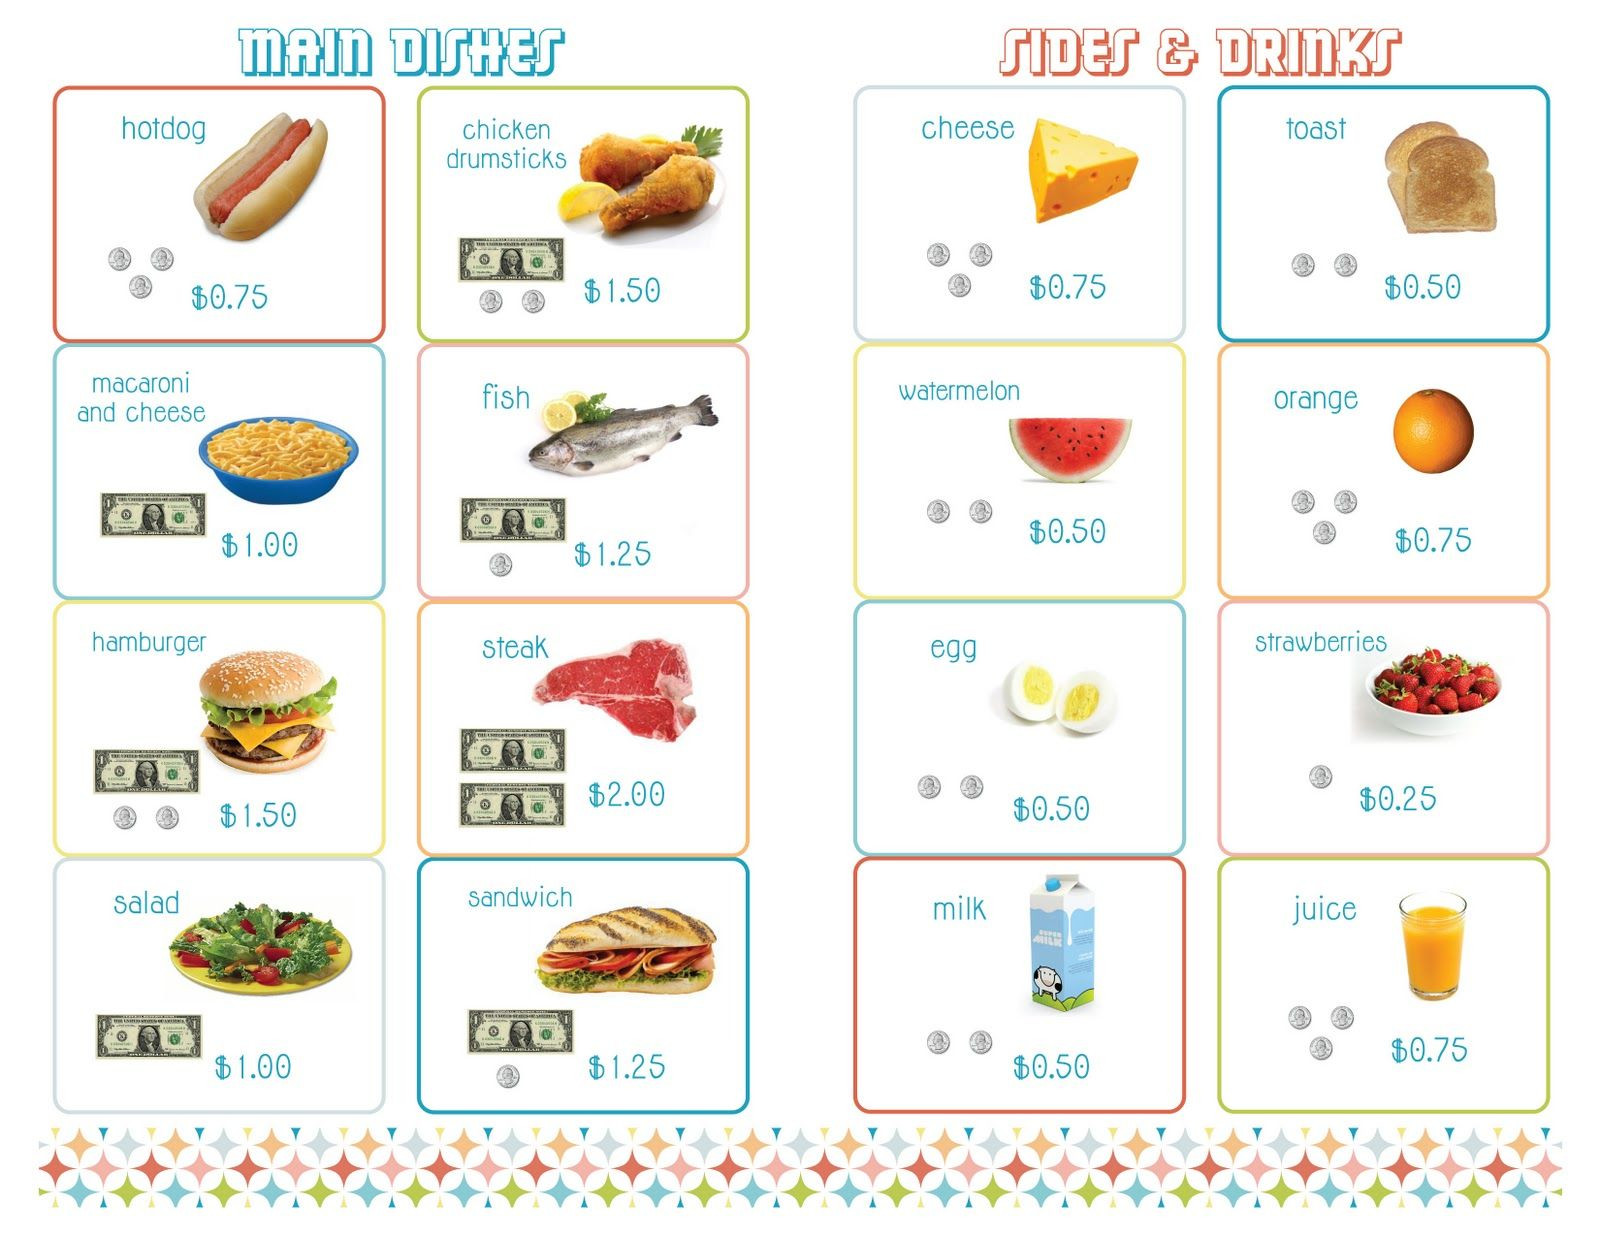 Restaurant Menu Math Worksheets Delightful Distractions Printable Menus for Playing